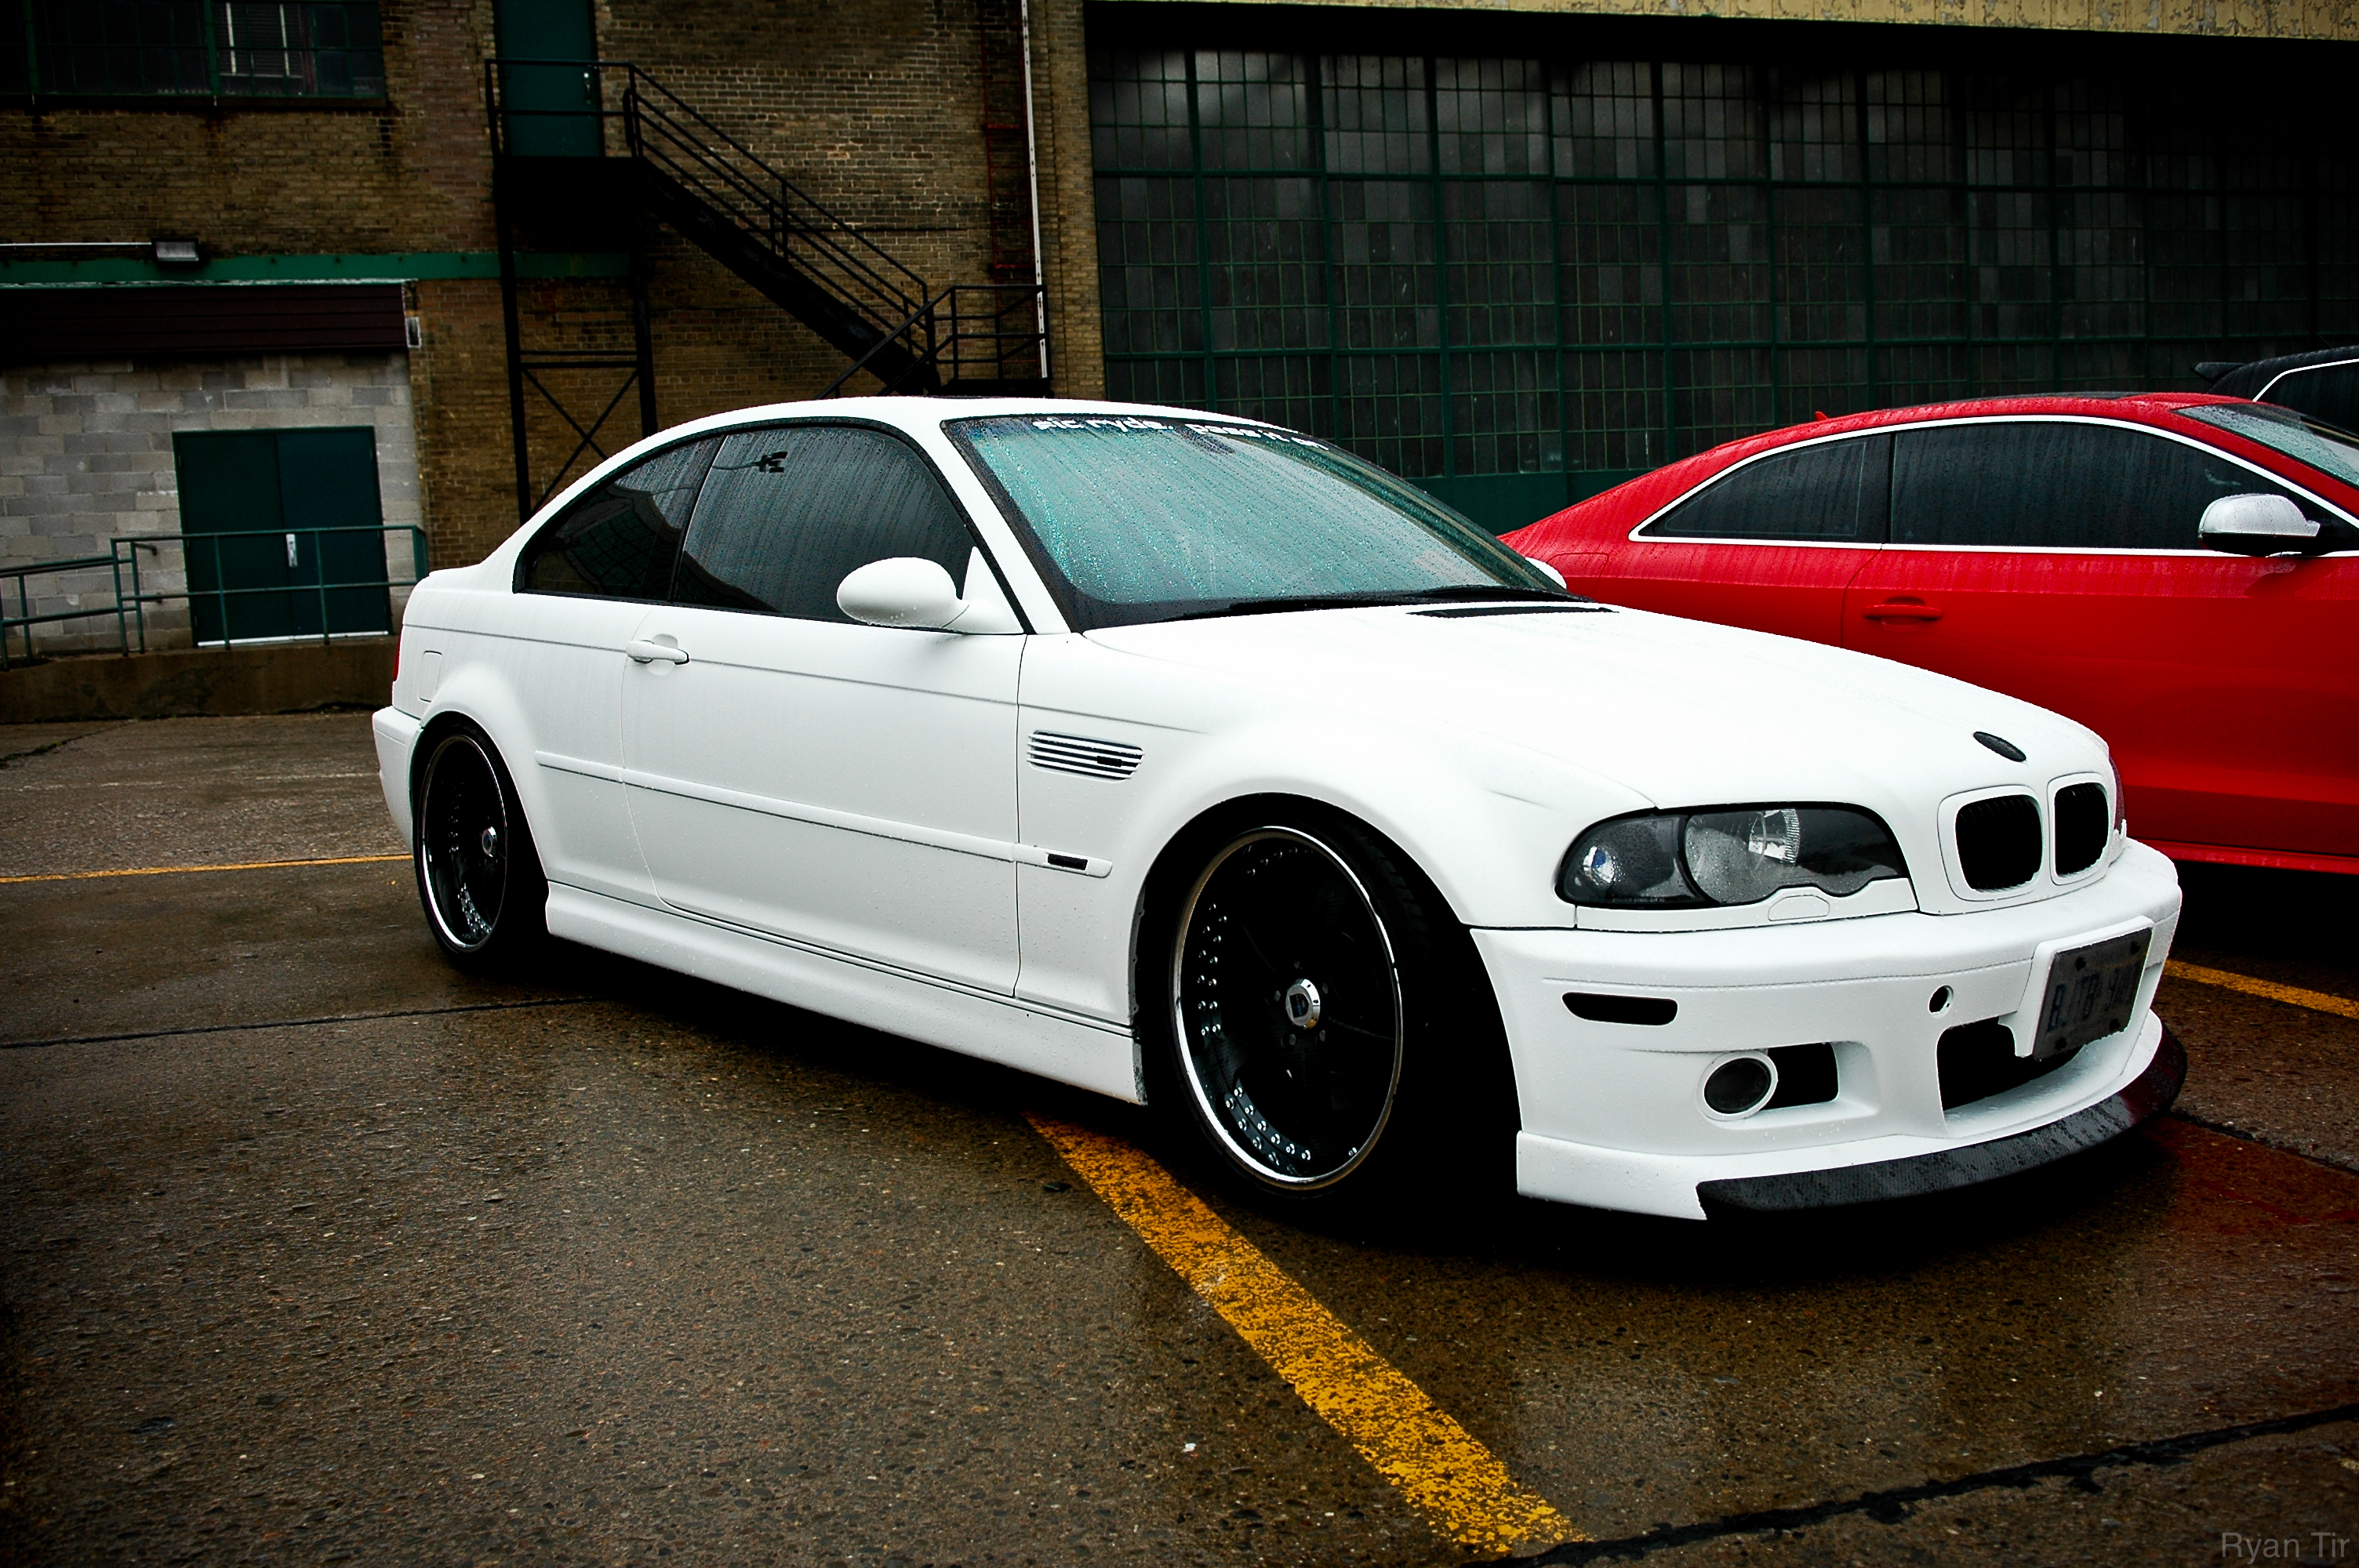 Bmw E46 M3 >> File:E46 M3.jpg - Wikimedia Commons